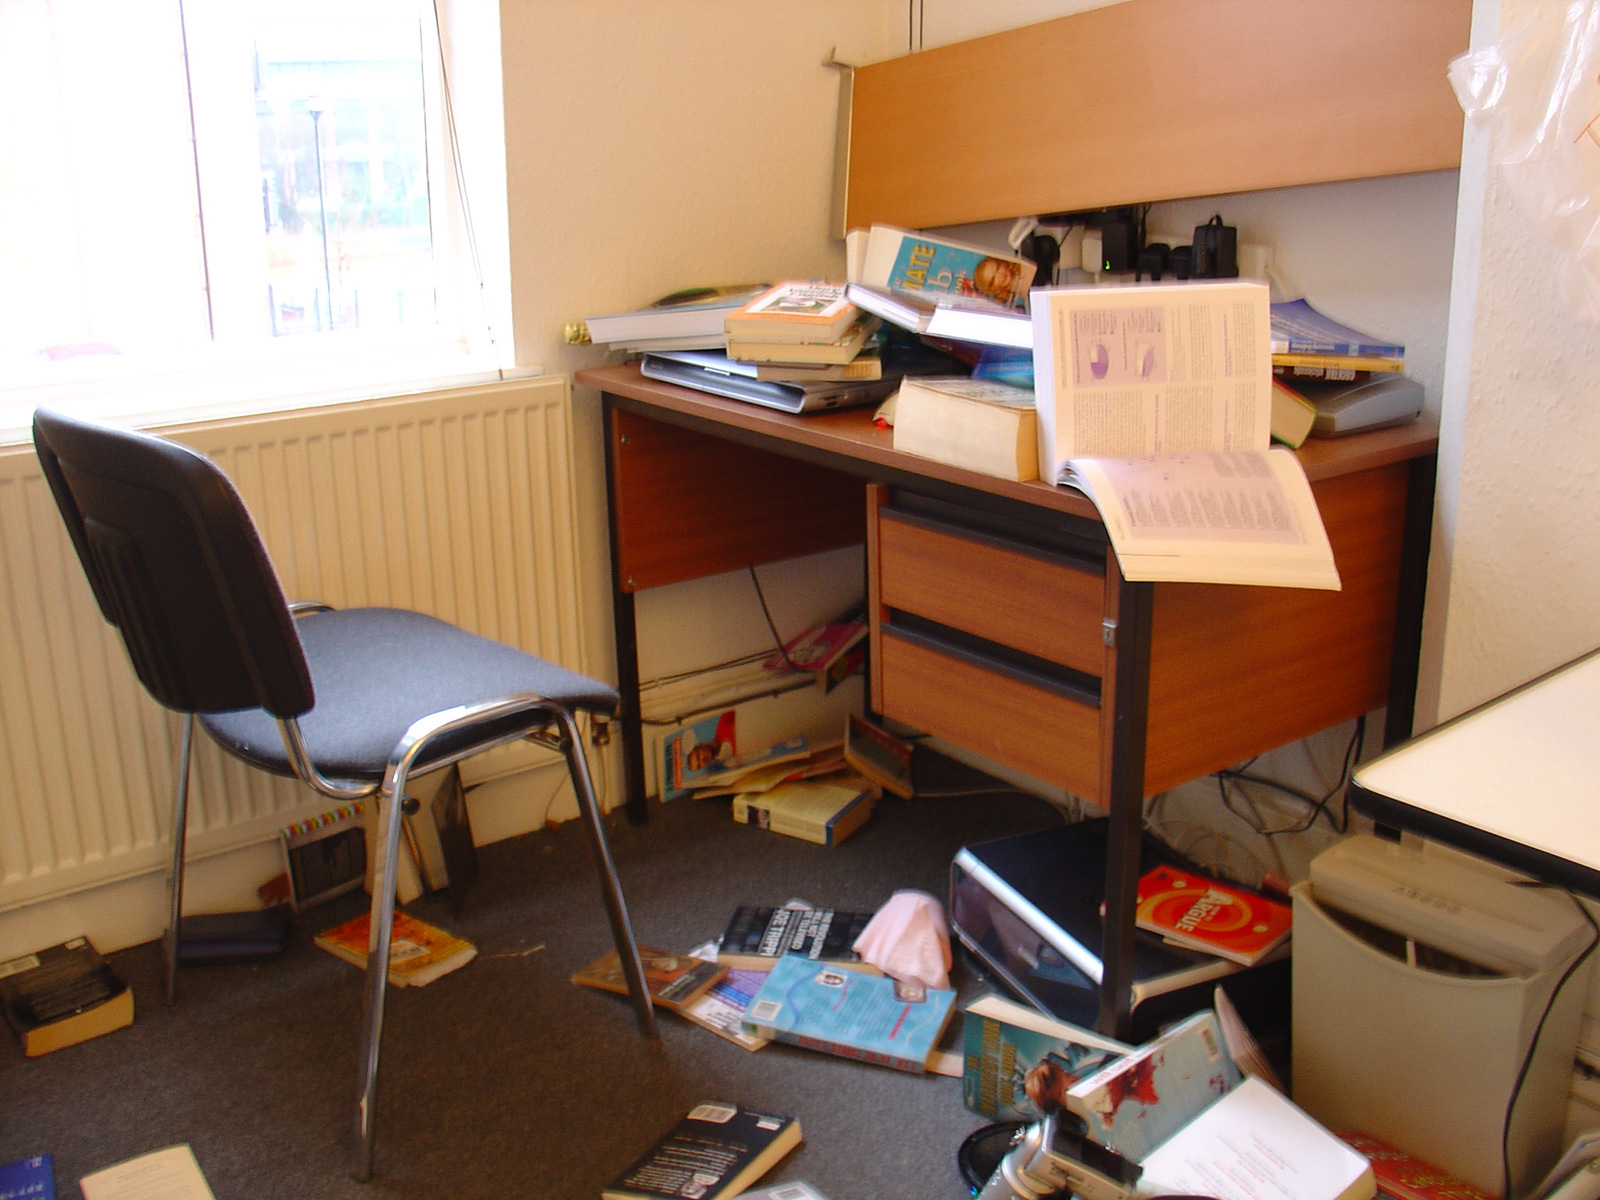 Collapsed shelf